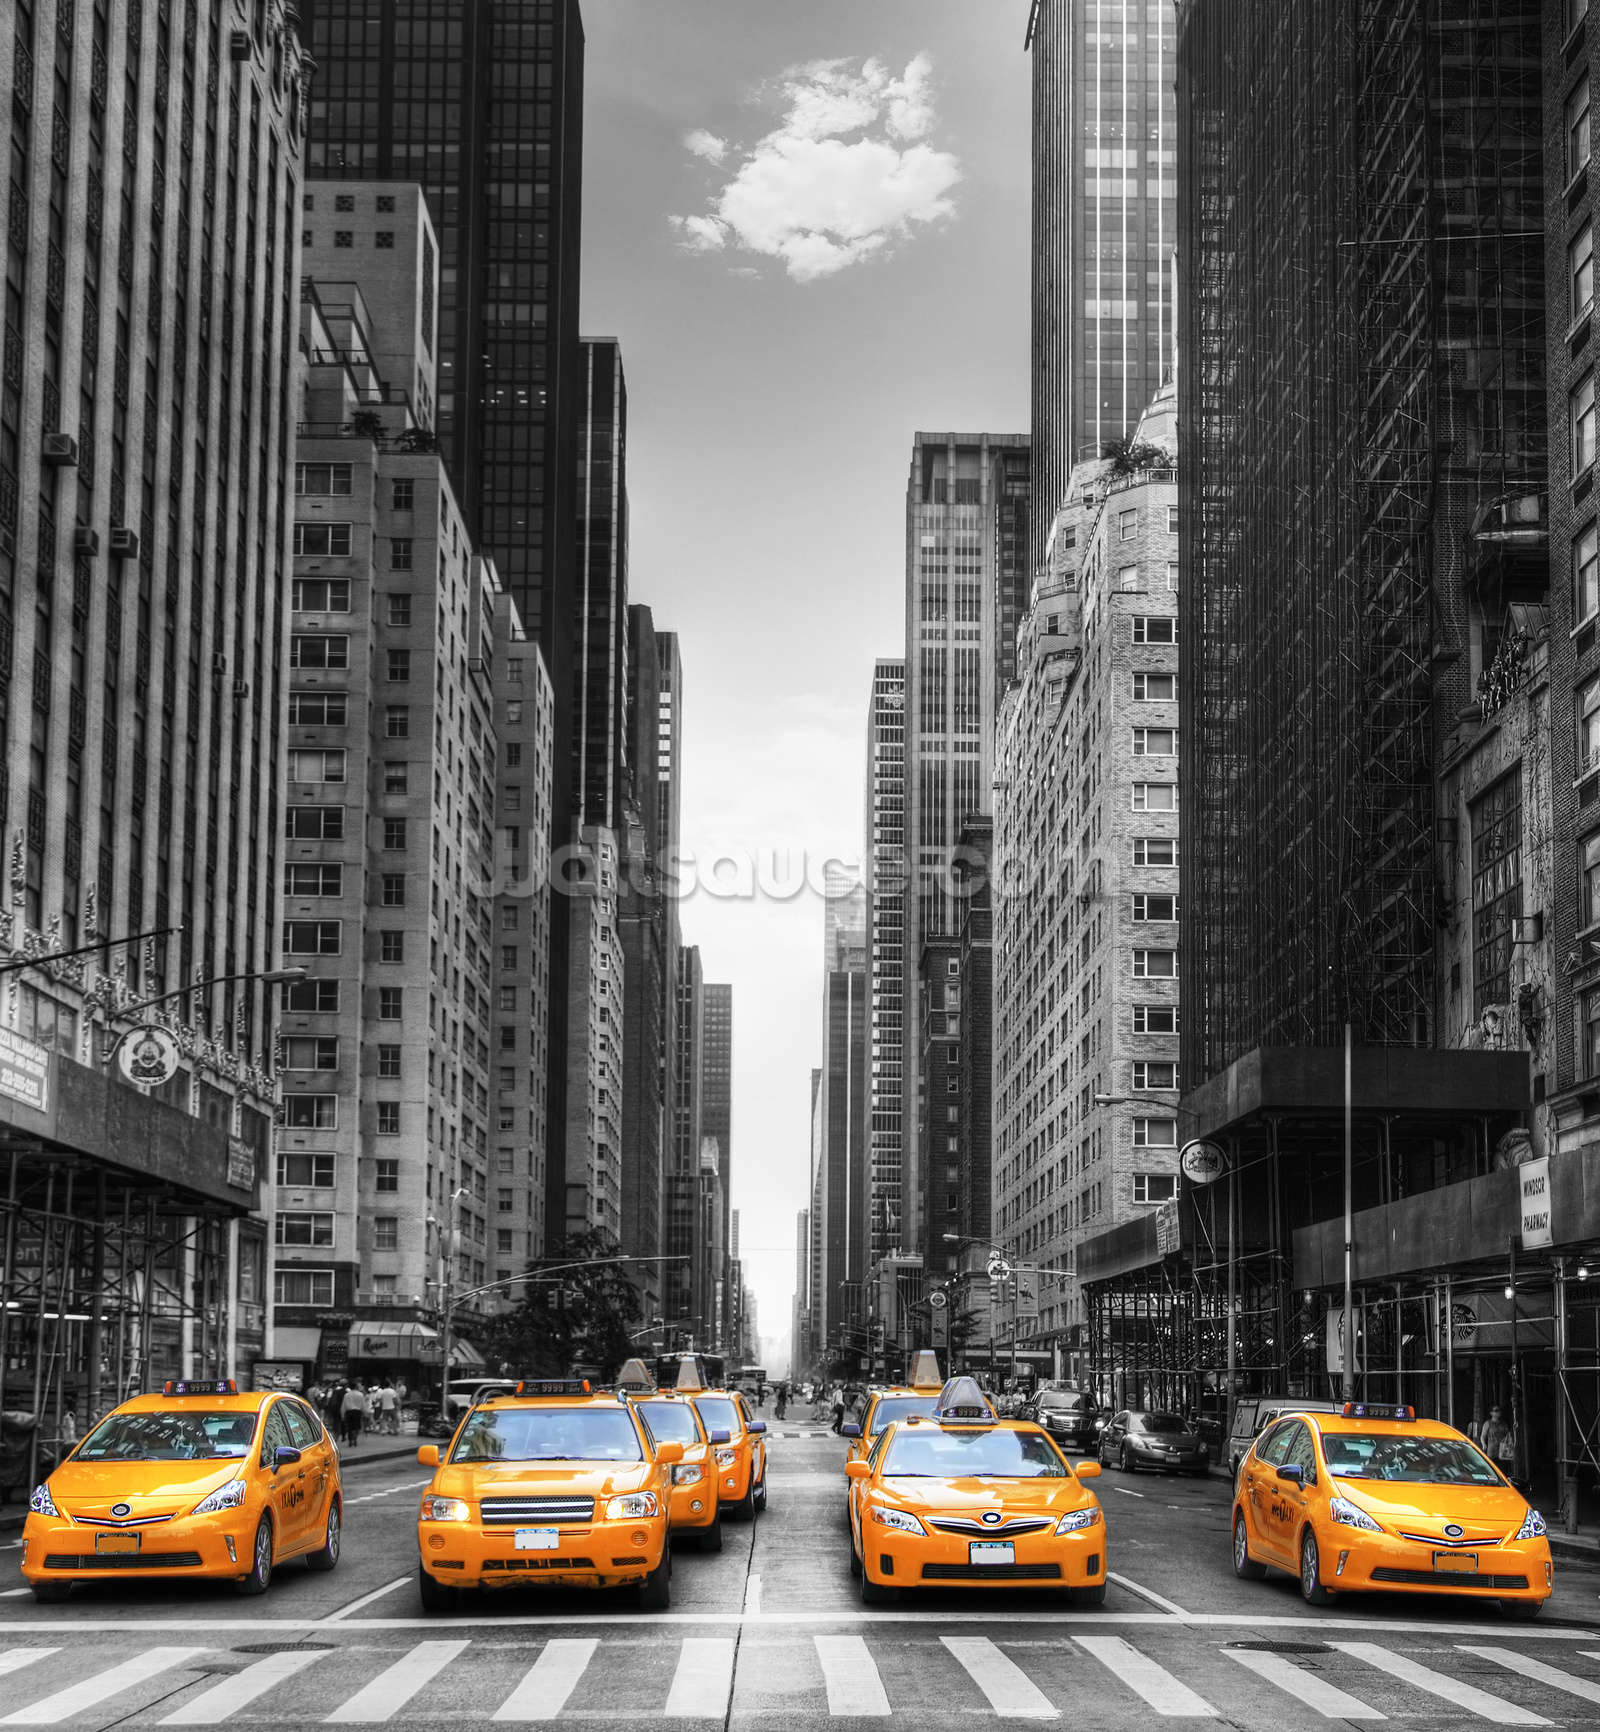 New york yellow taxis wall mural wallpaper wallsauce for Black and white new york mural wallpaper